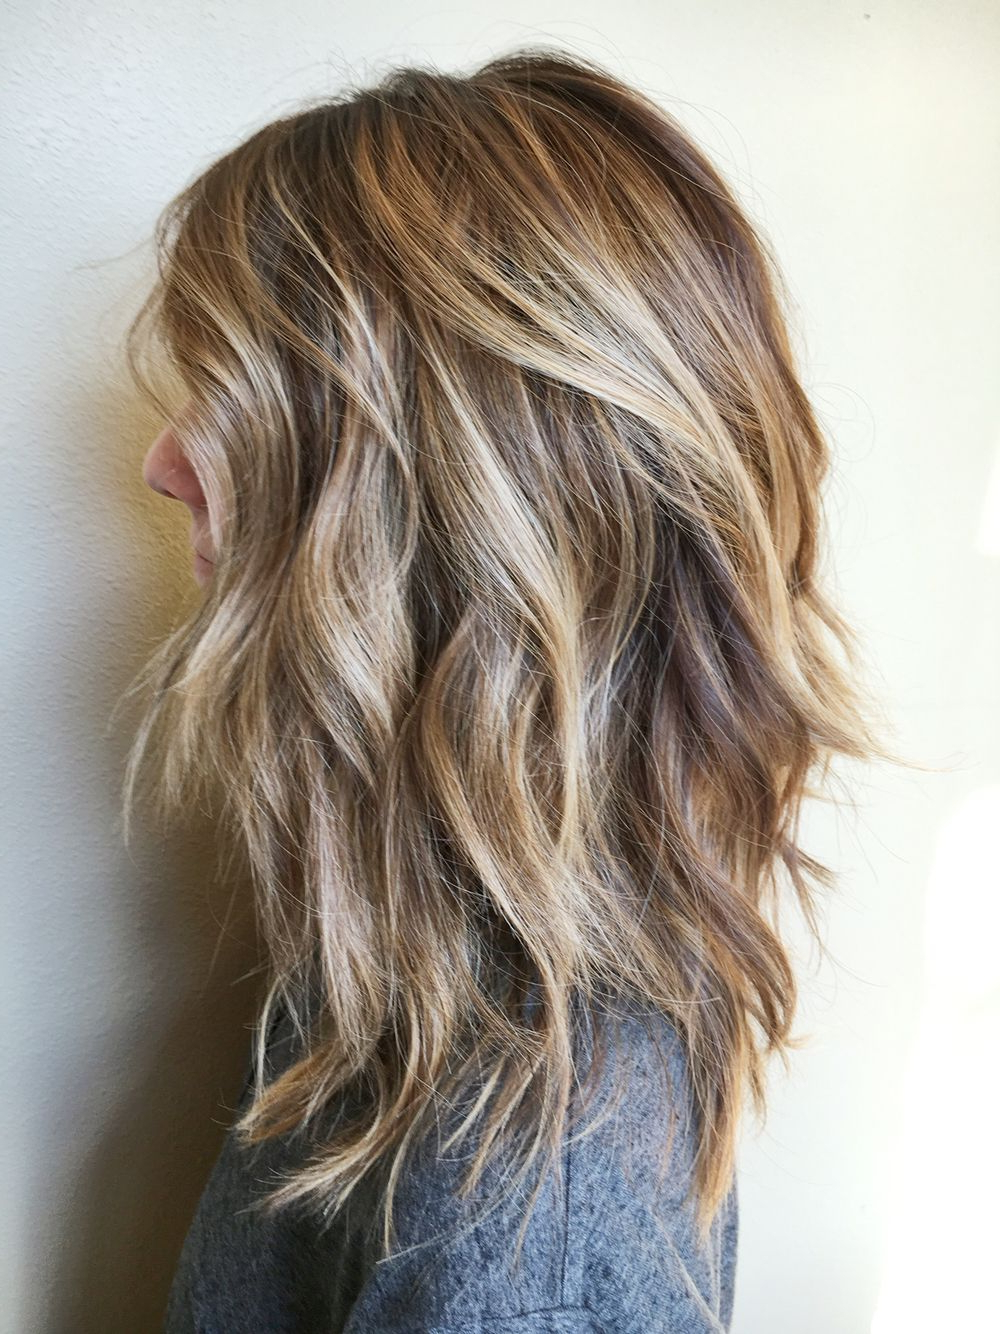 40 Amazing Medium Length Hairstyles & Shoulder Length Haircuts Inside Hairstyles For Long Hair With Short Layers (View 2 of 25)